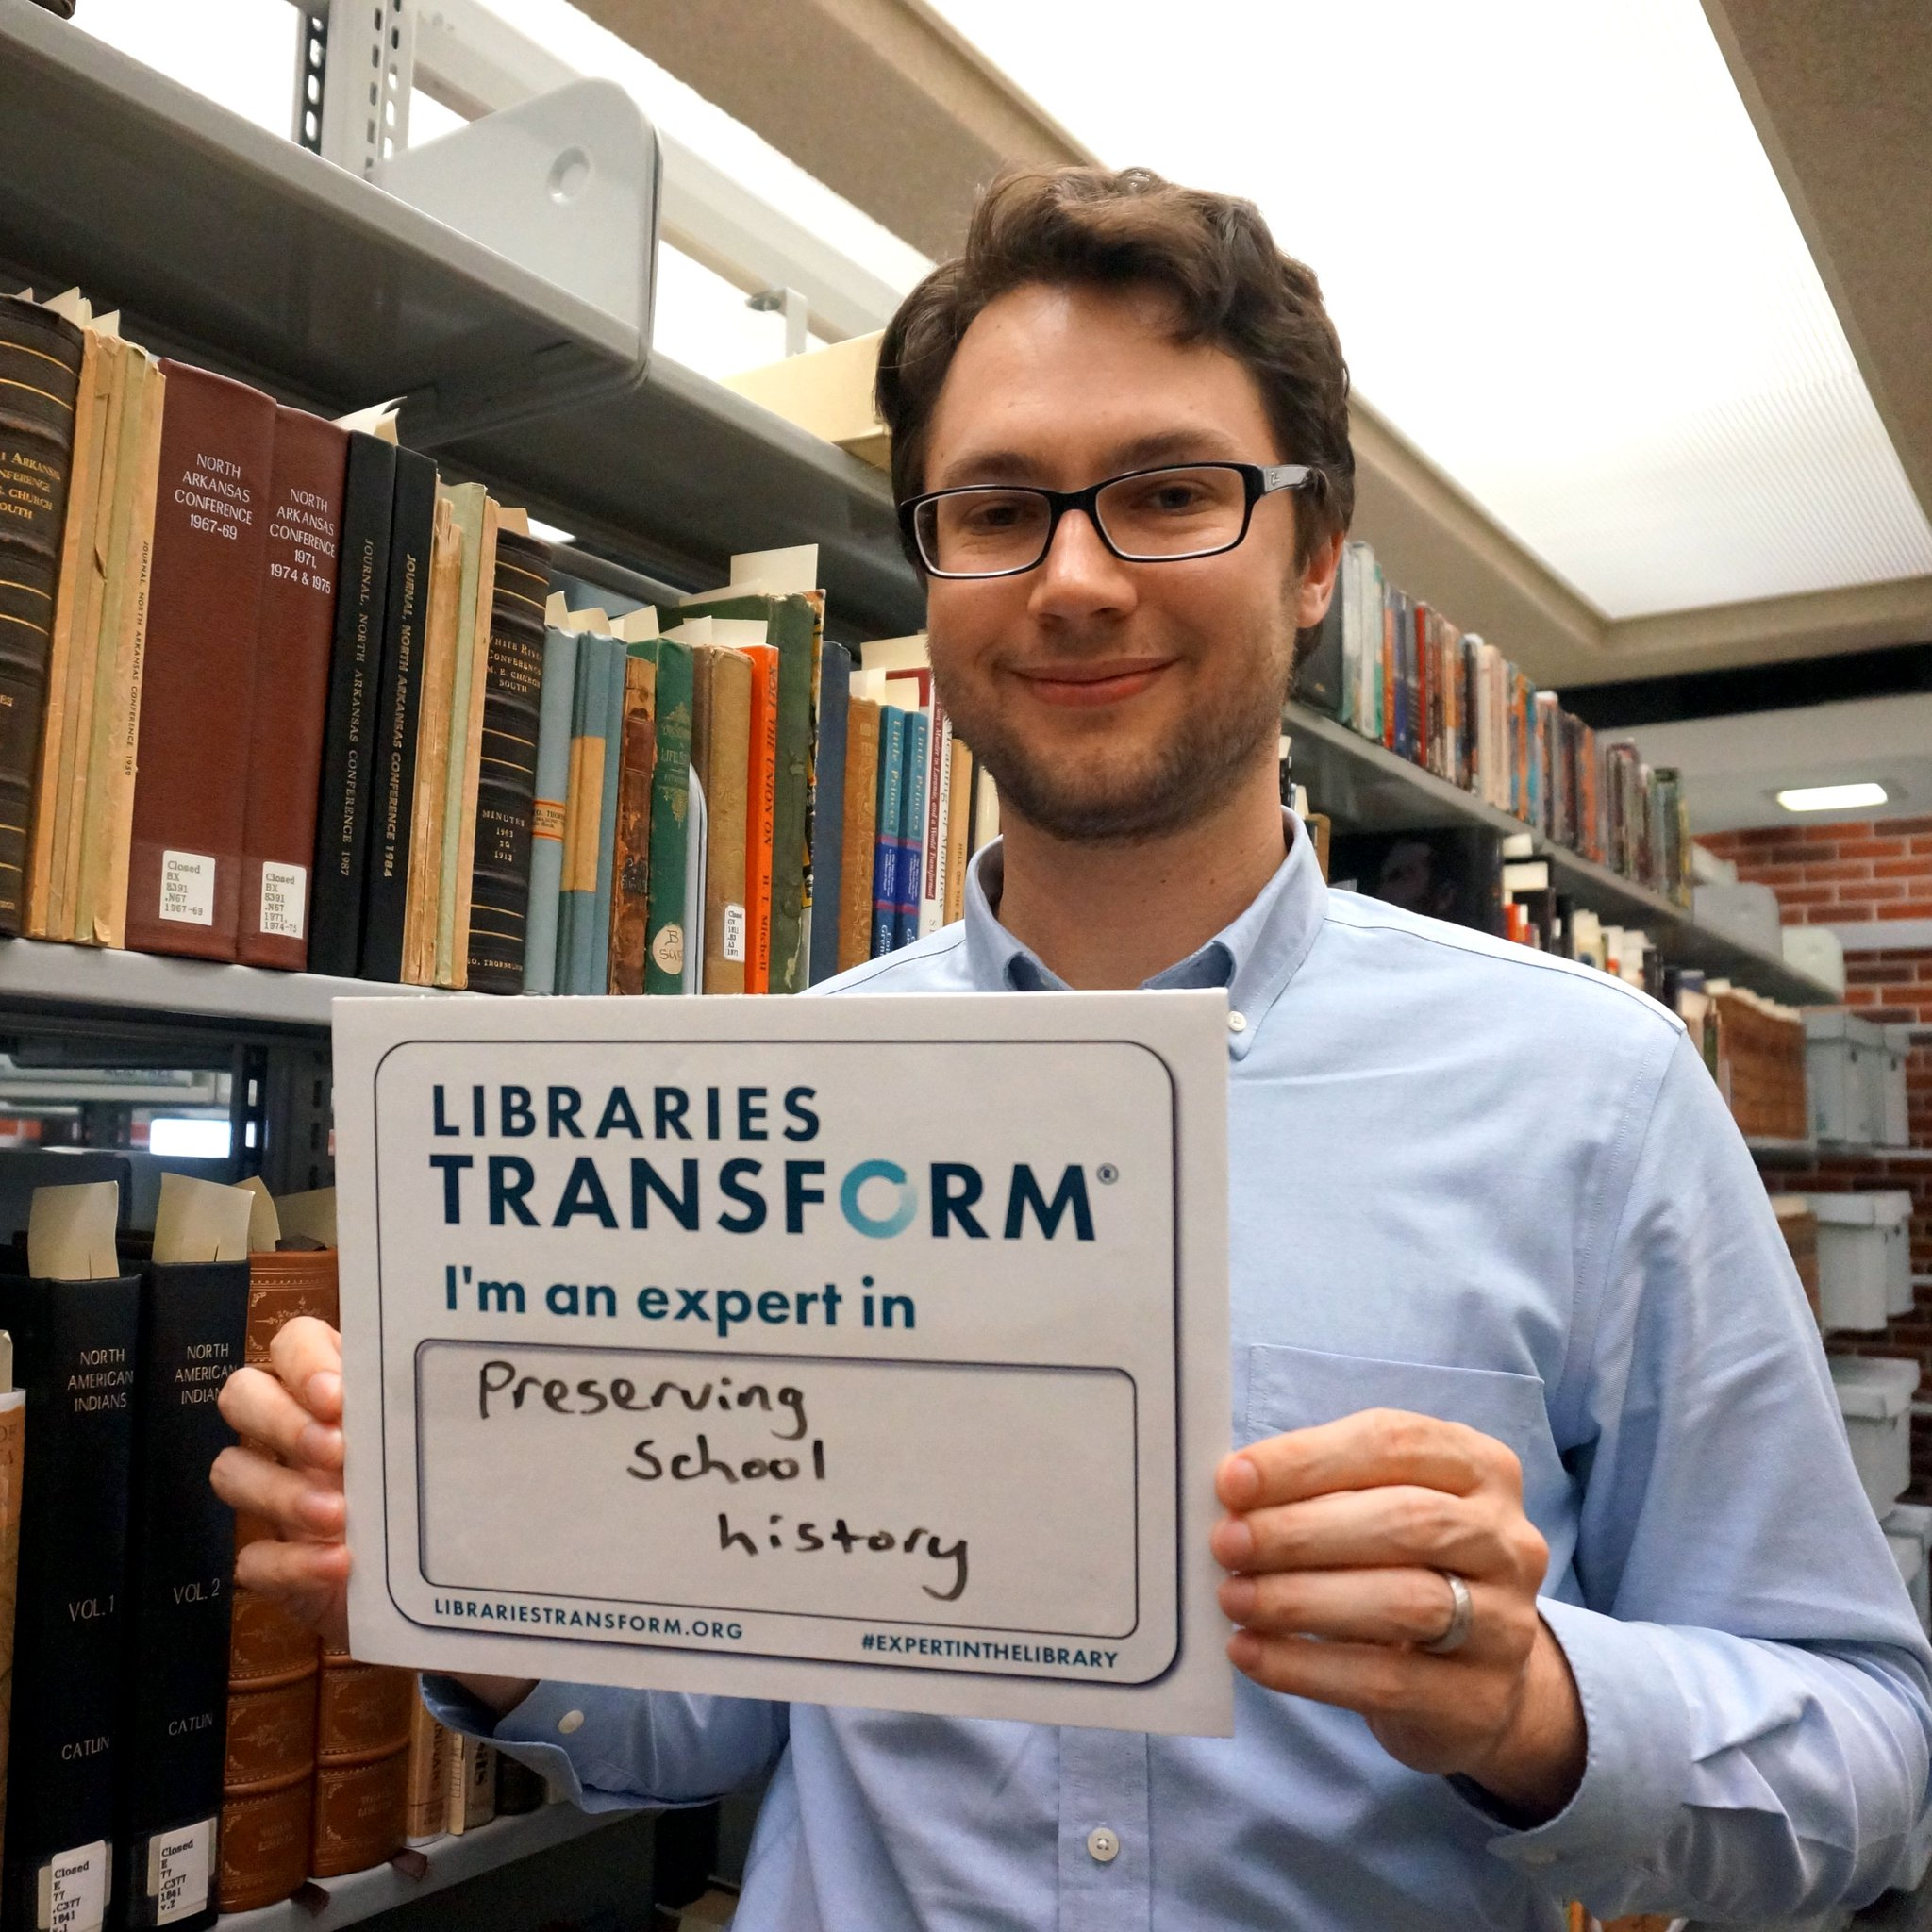 Ken works in our special collections! He's an expert at preserving the #Reddie story! #expertinthelibrary #NationalLibraryWeek https://t.co/AwkC1YbflM